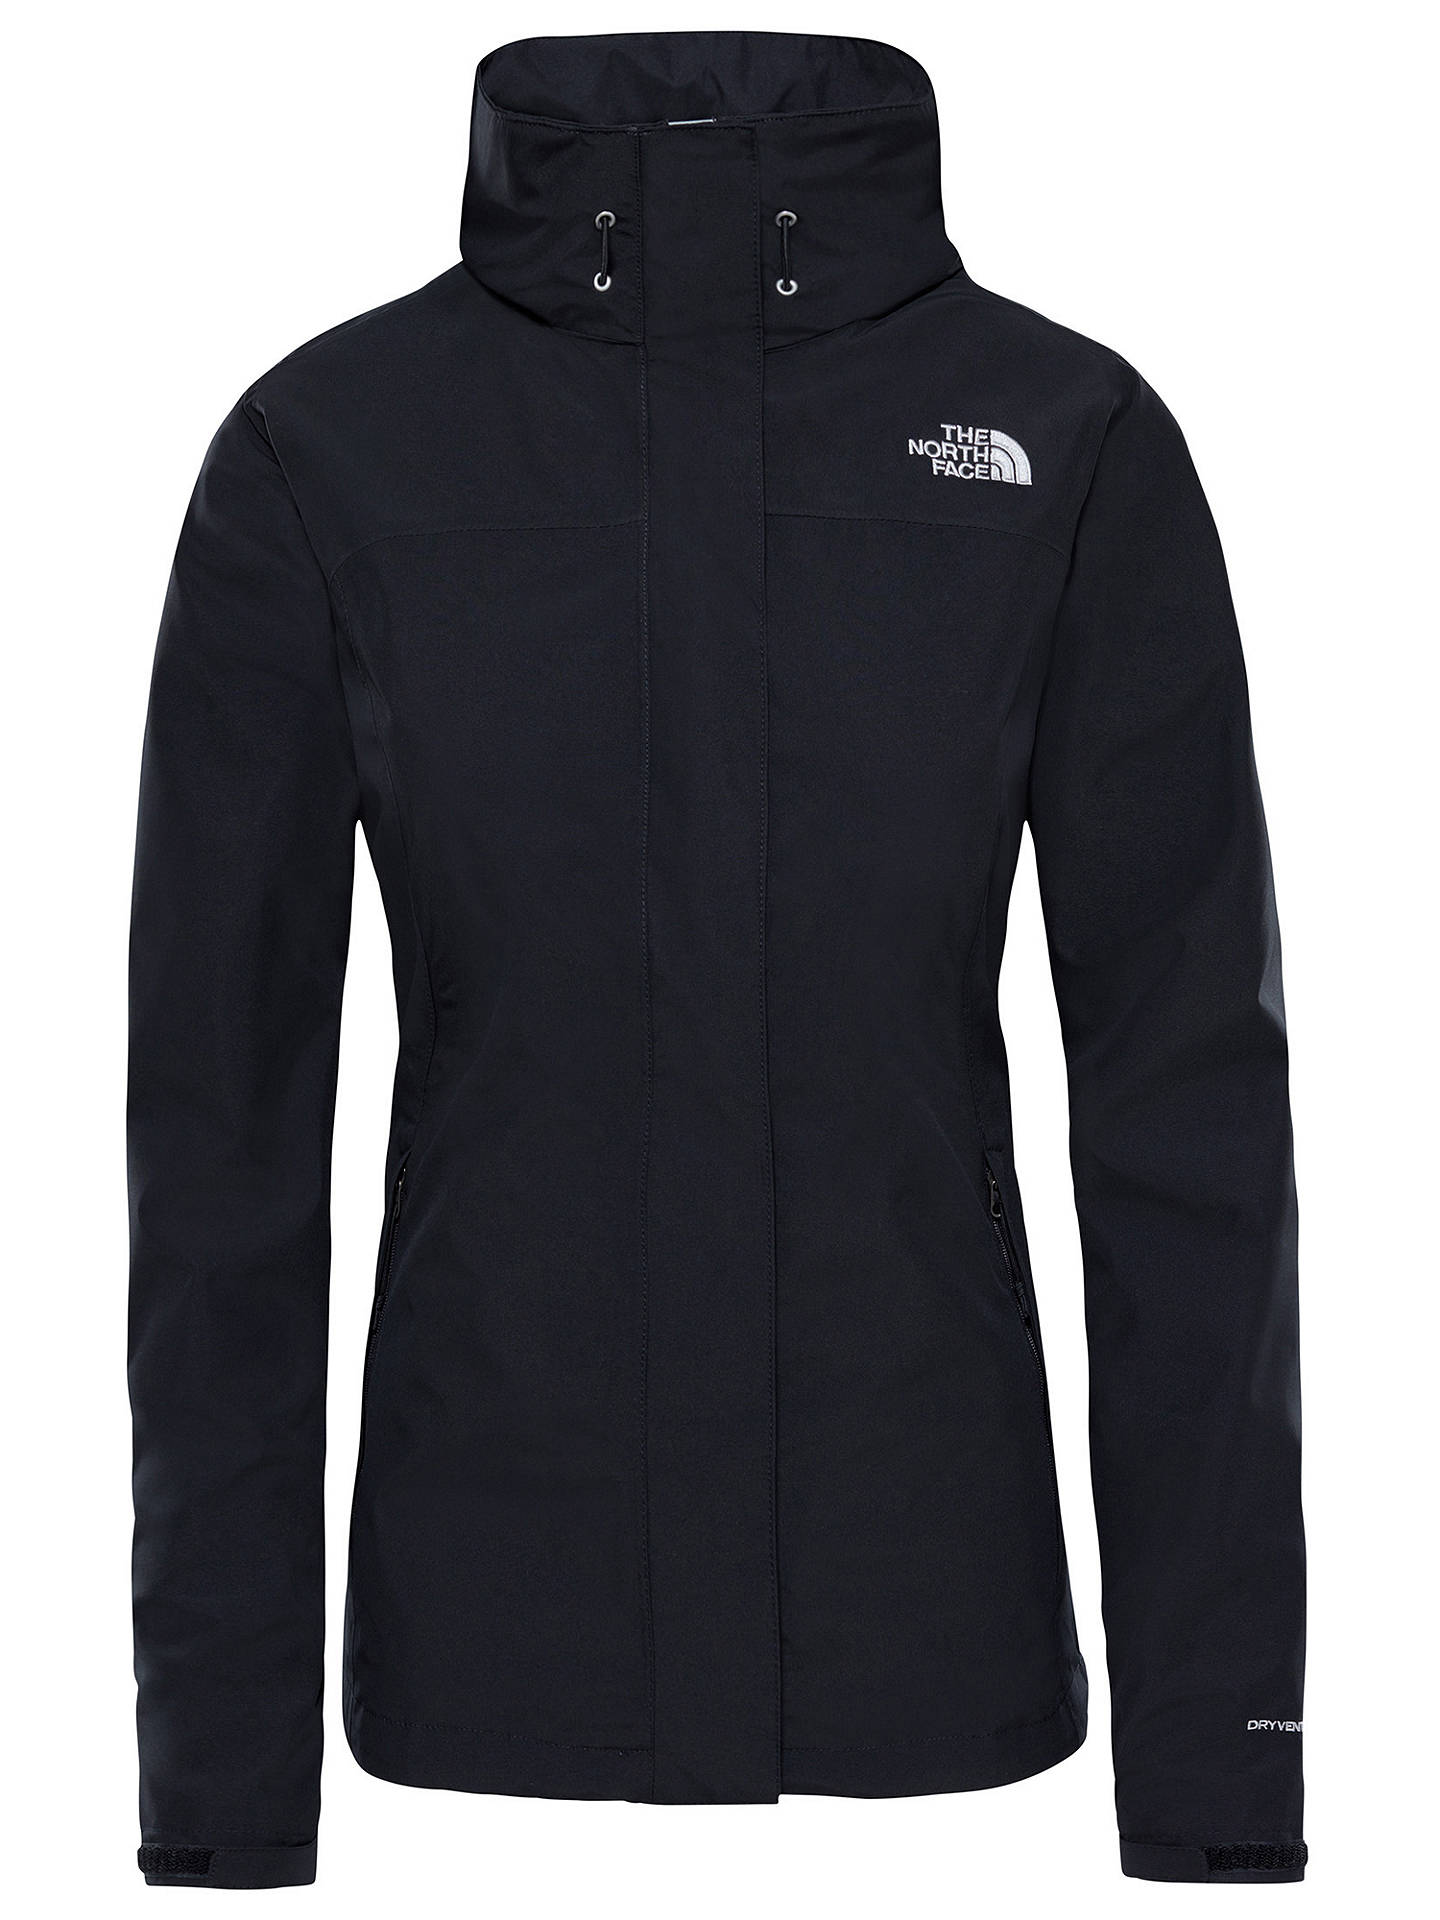 BuyThe North Face Sangro Waterproof Women's Jacket, Black, S Online at johnlewis.com